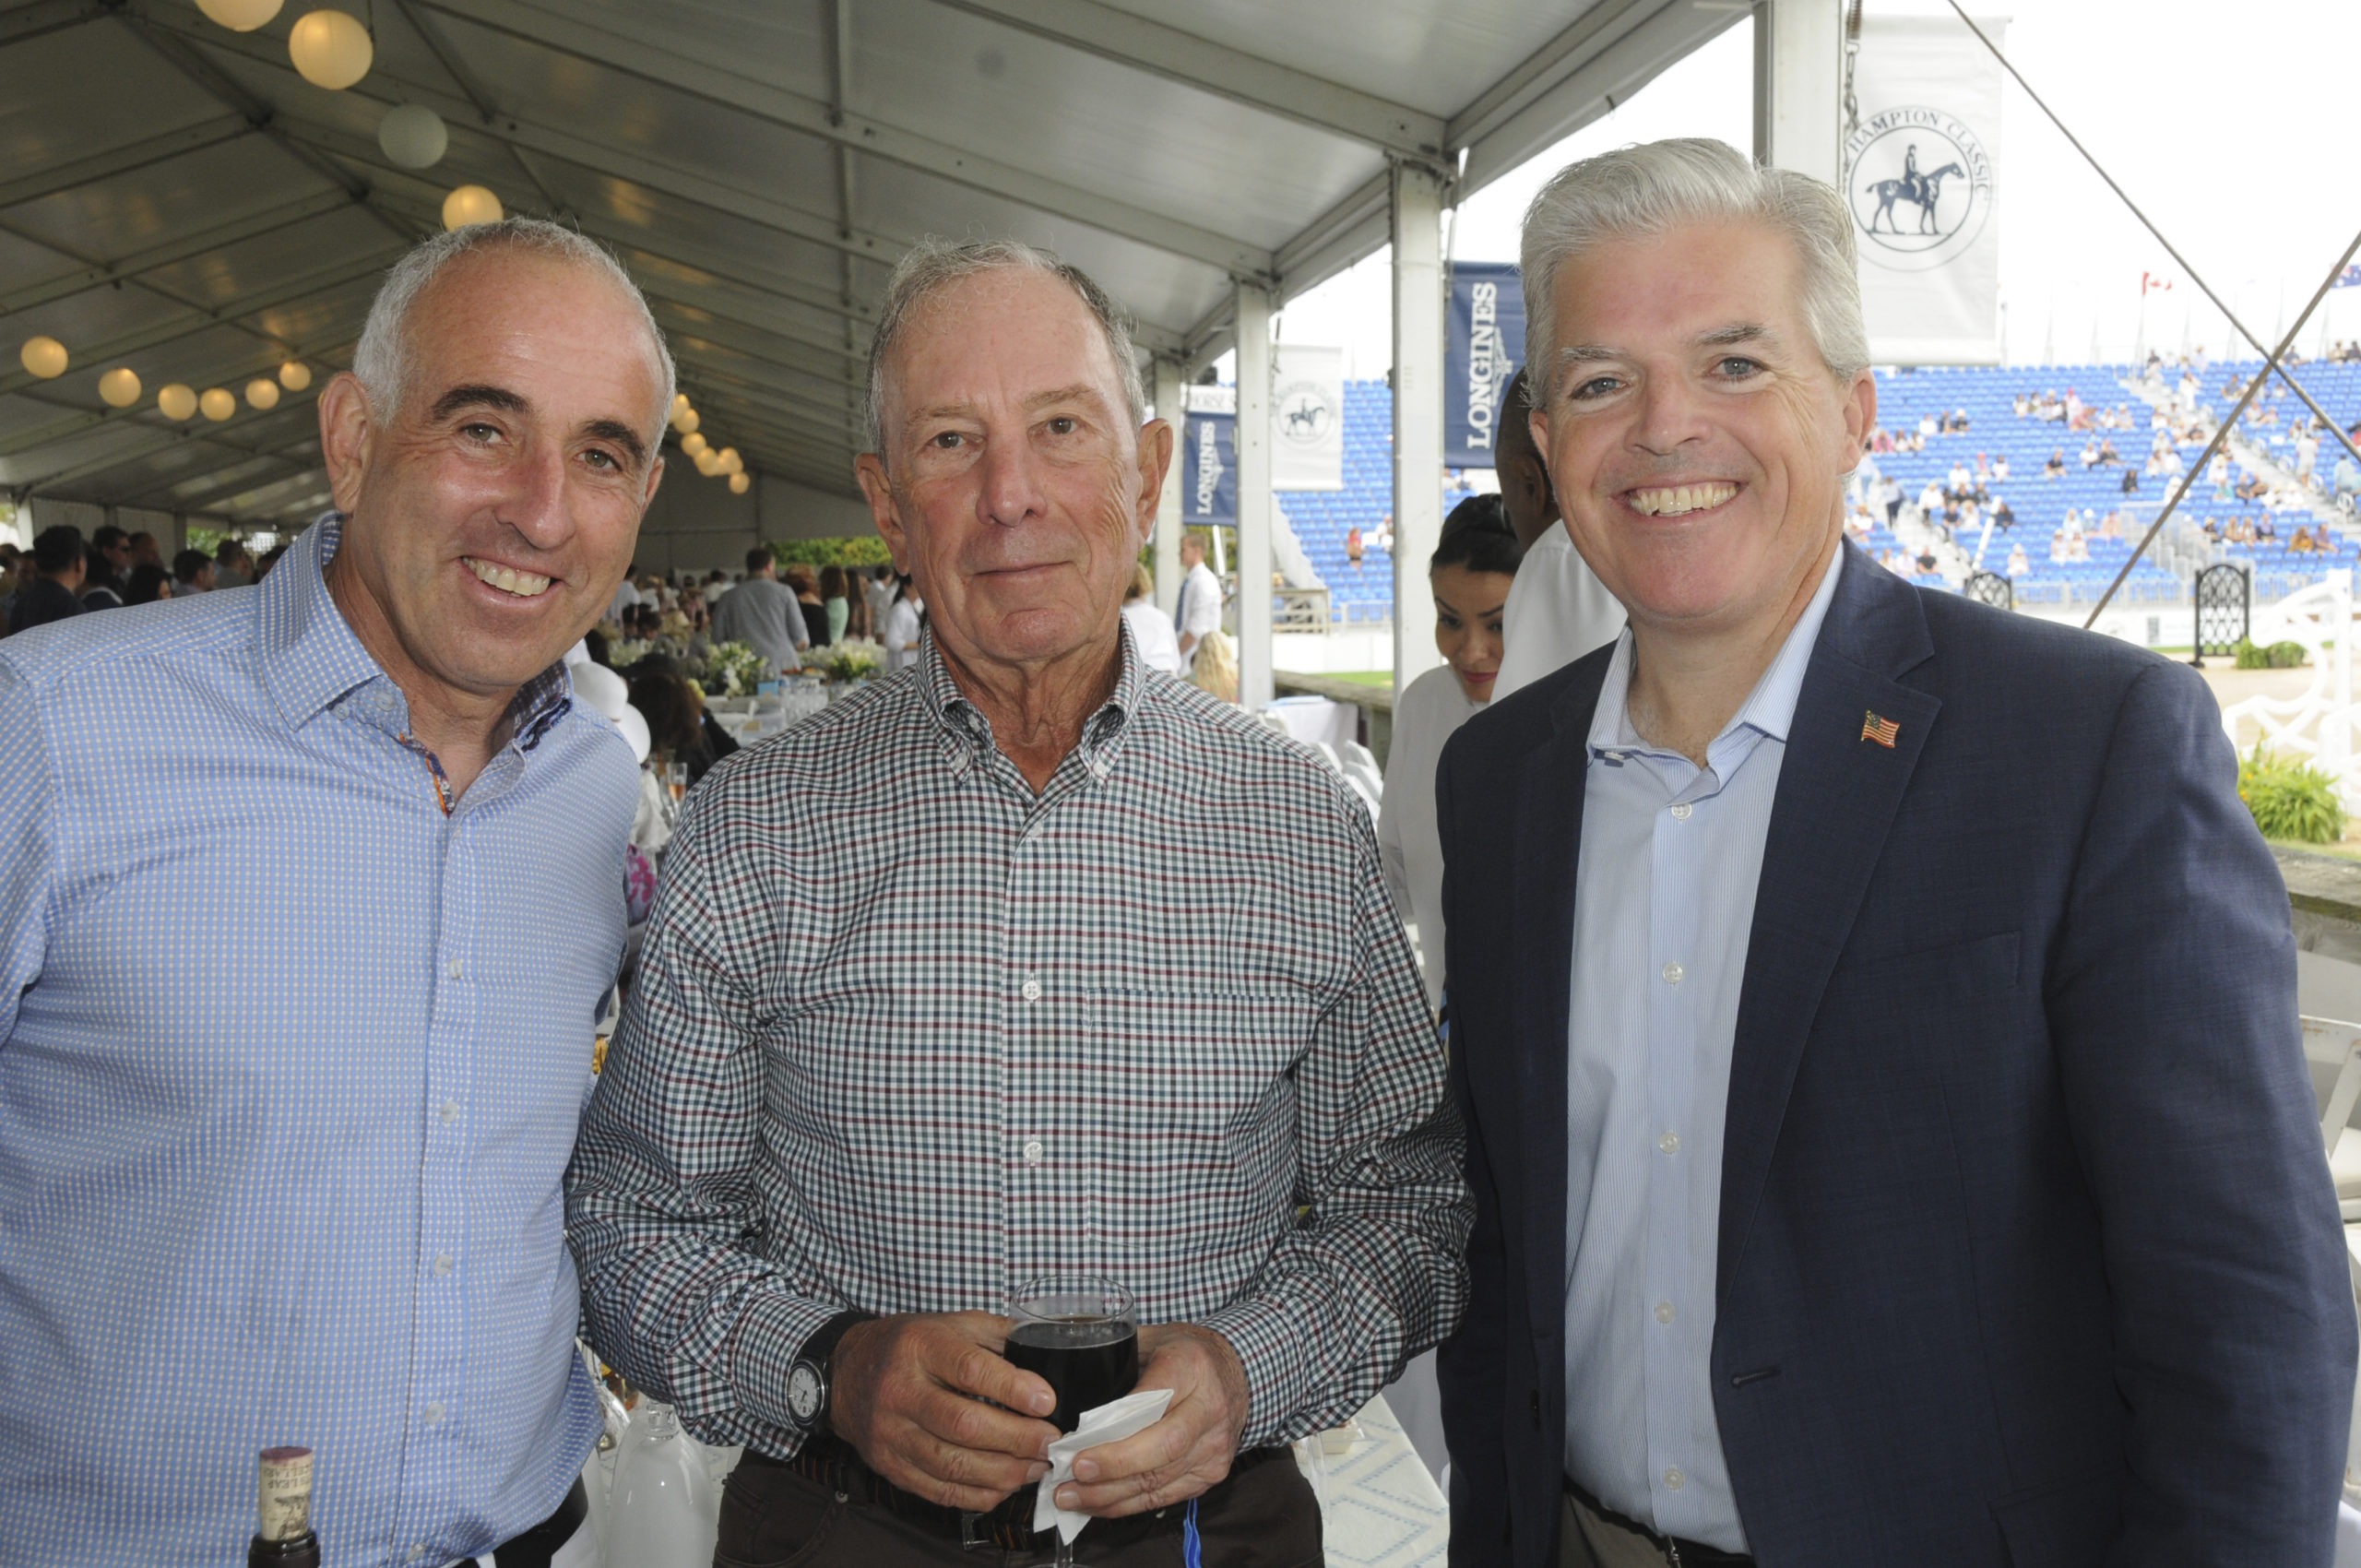 Jay Schneiderman, Michael Bloomberg and Steve Bellone in the tent at the Hampton Classic Grand Prix on Sunday afternoon.   RICHARD LEWIN